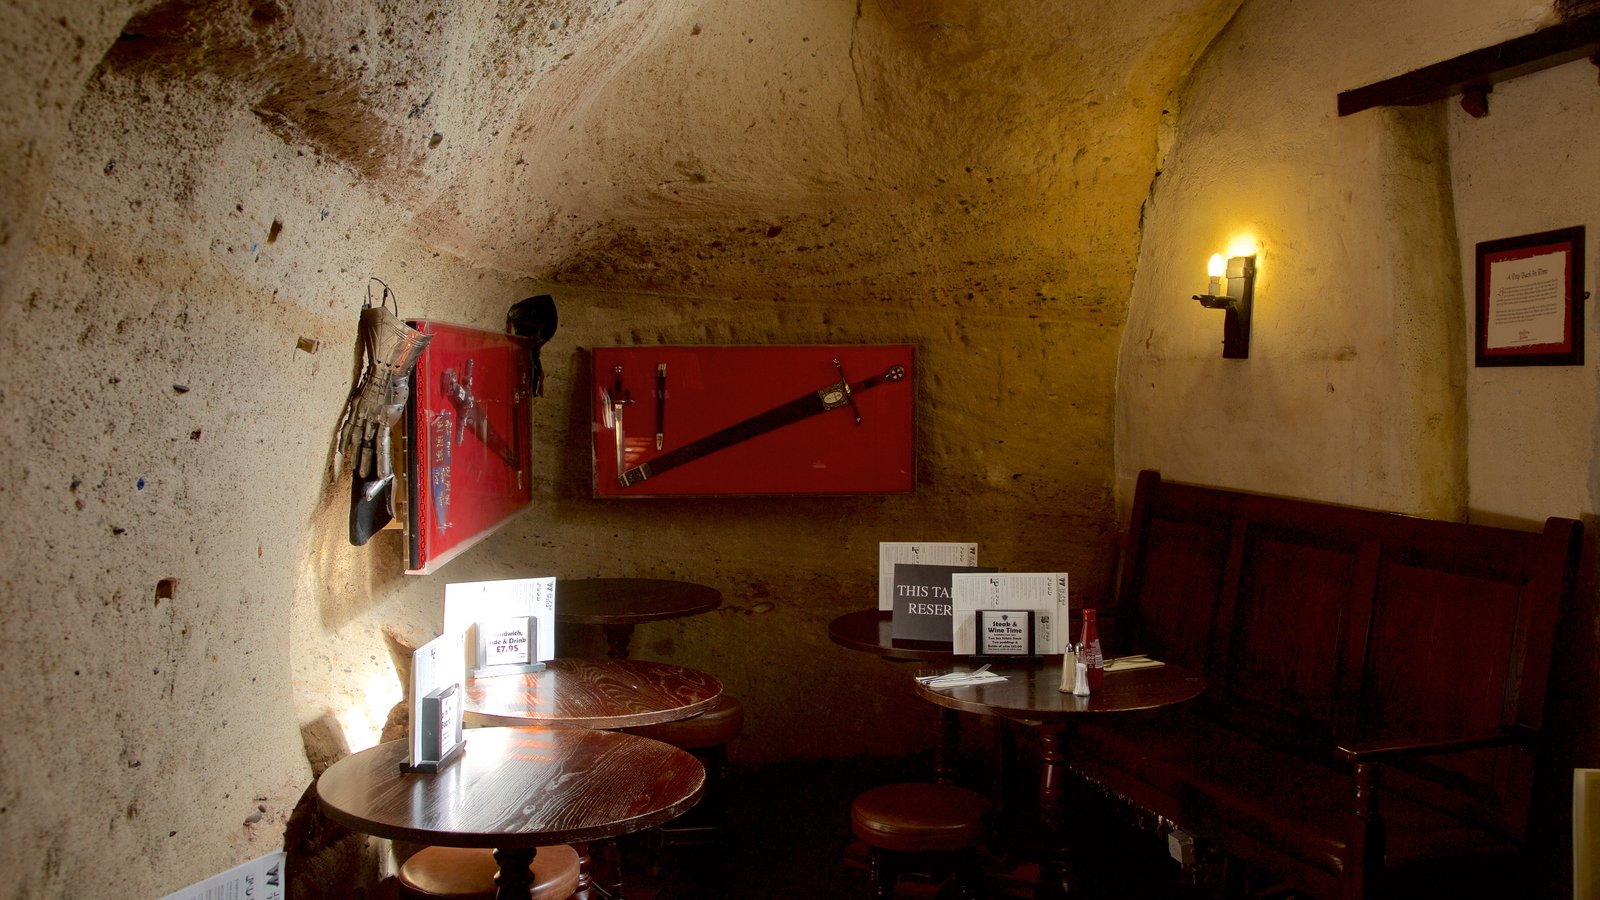 St. George's Day small cosy pub room with a wall art of a sword